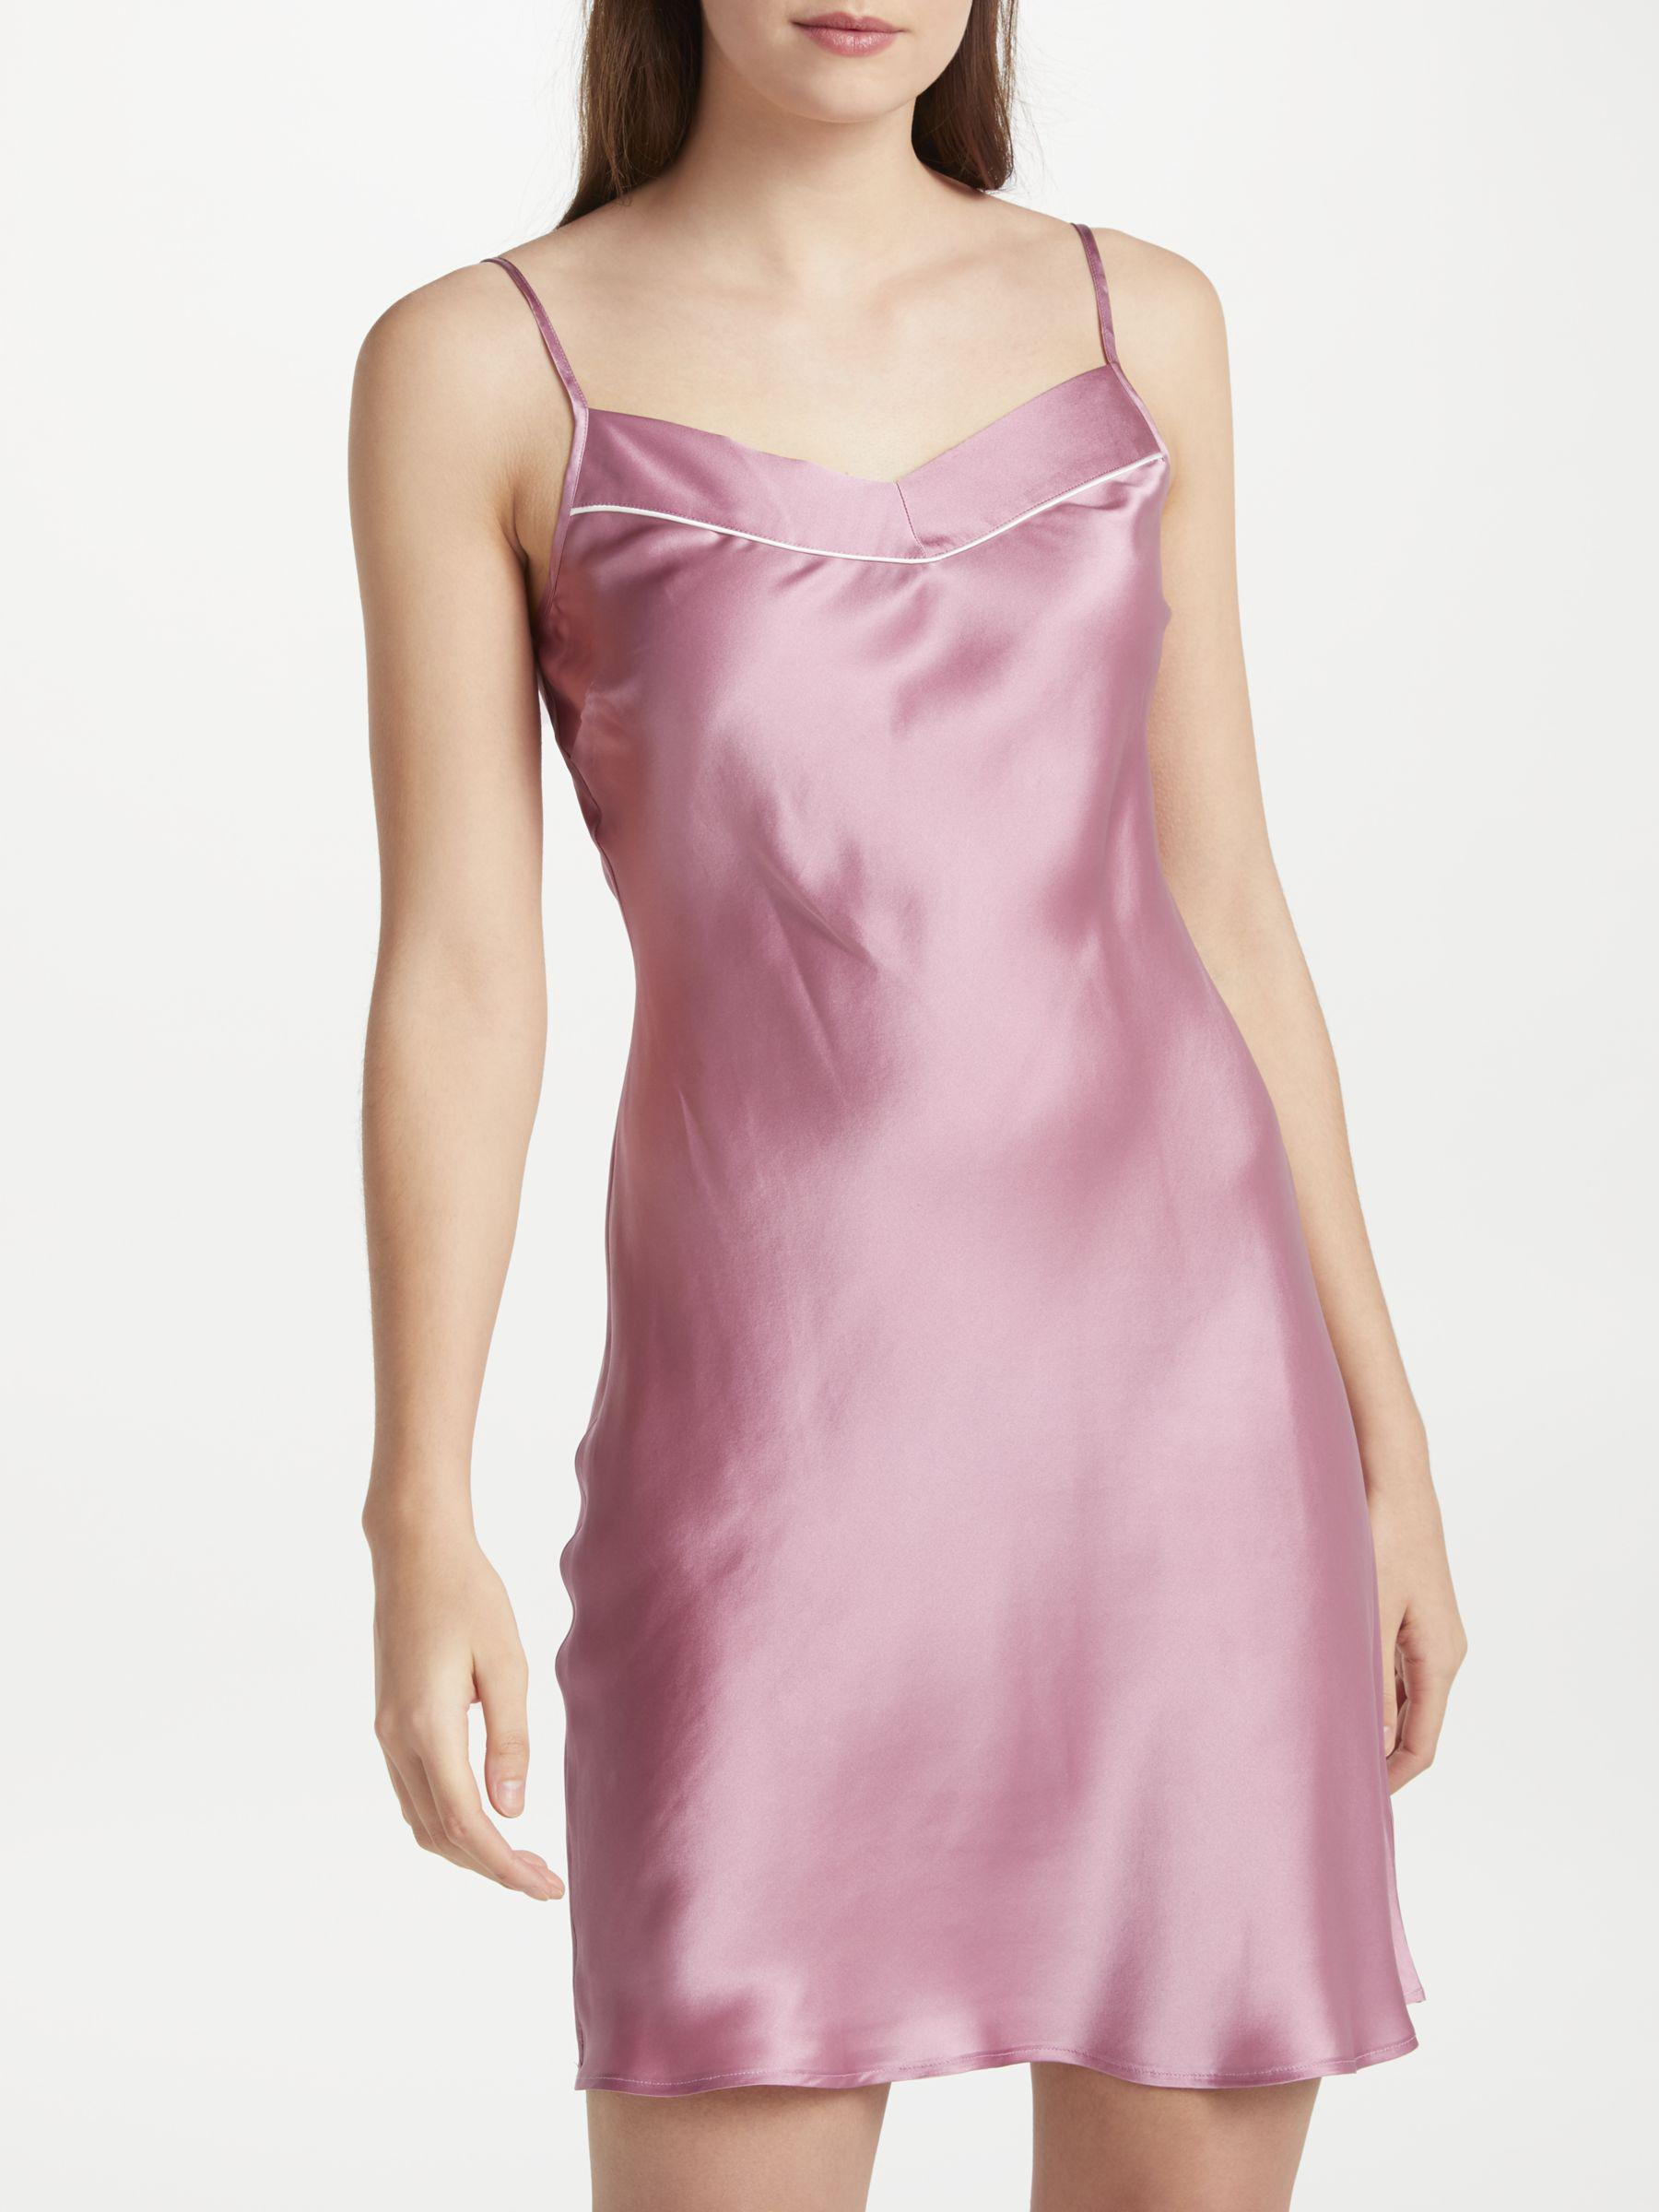 0e4782d9bf John Lewis Silk Chemise in Pink - Lyst